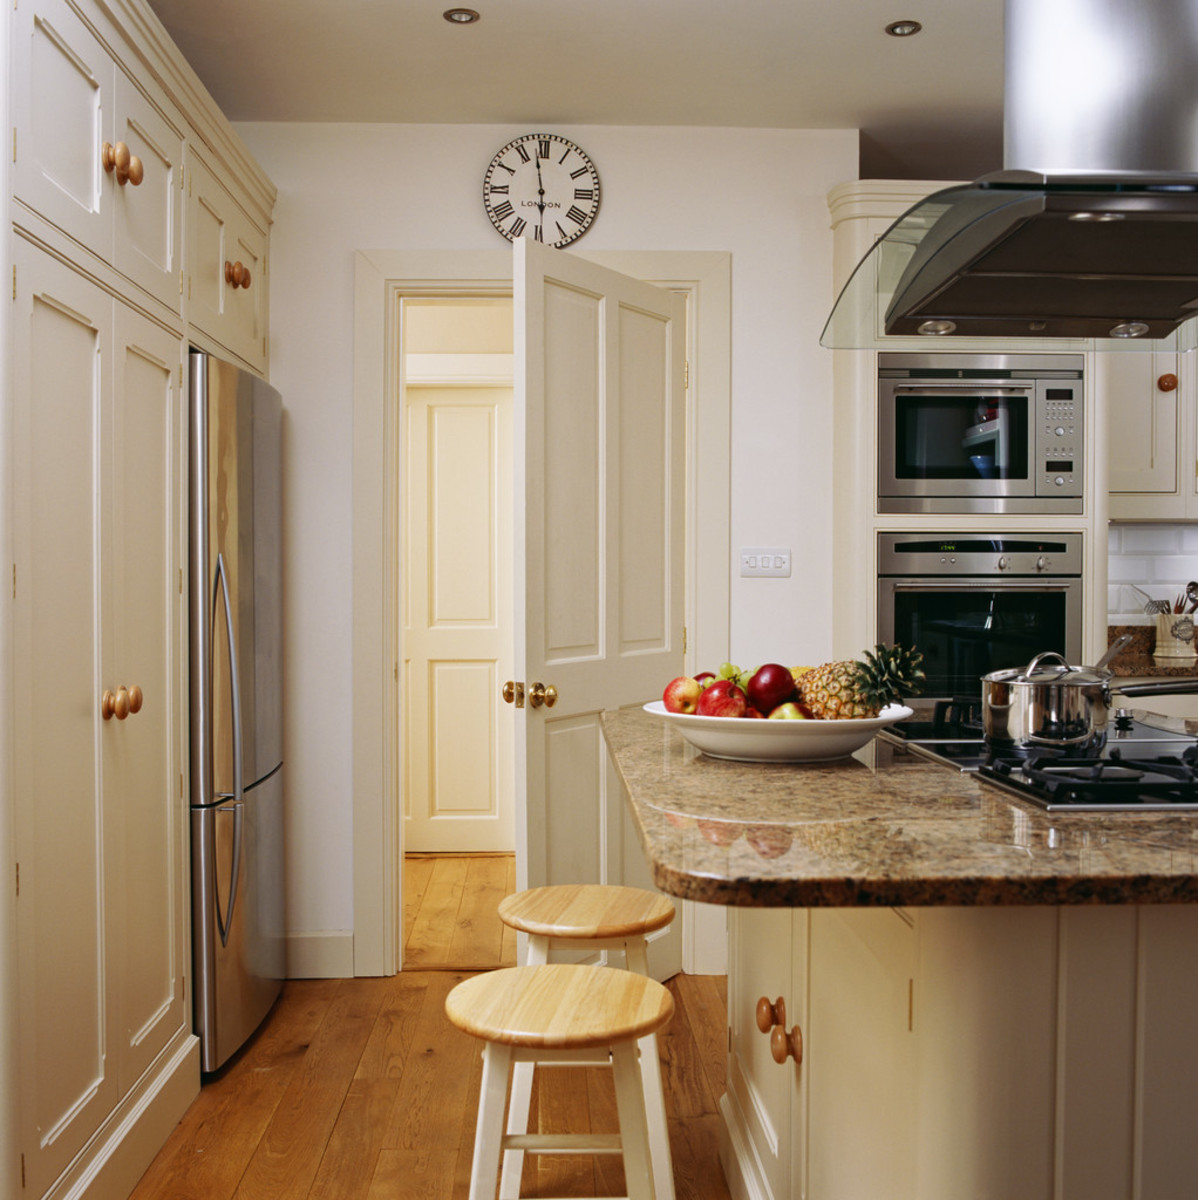 Convert your extra space into a brand new kitchen